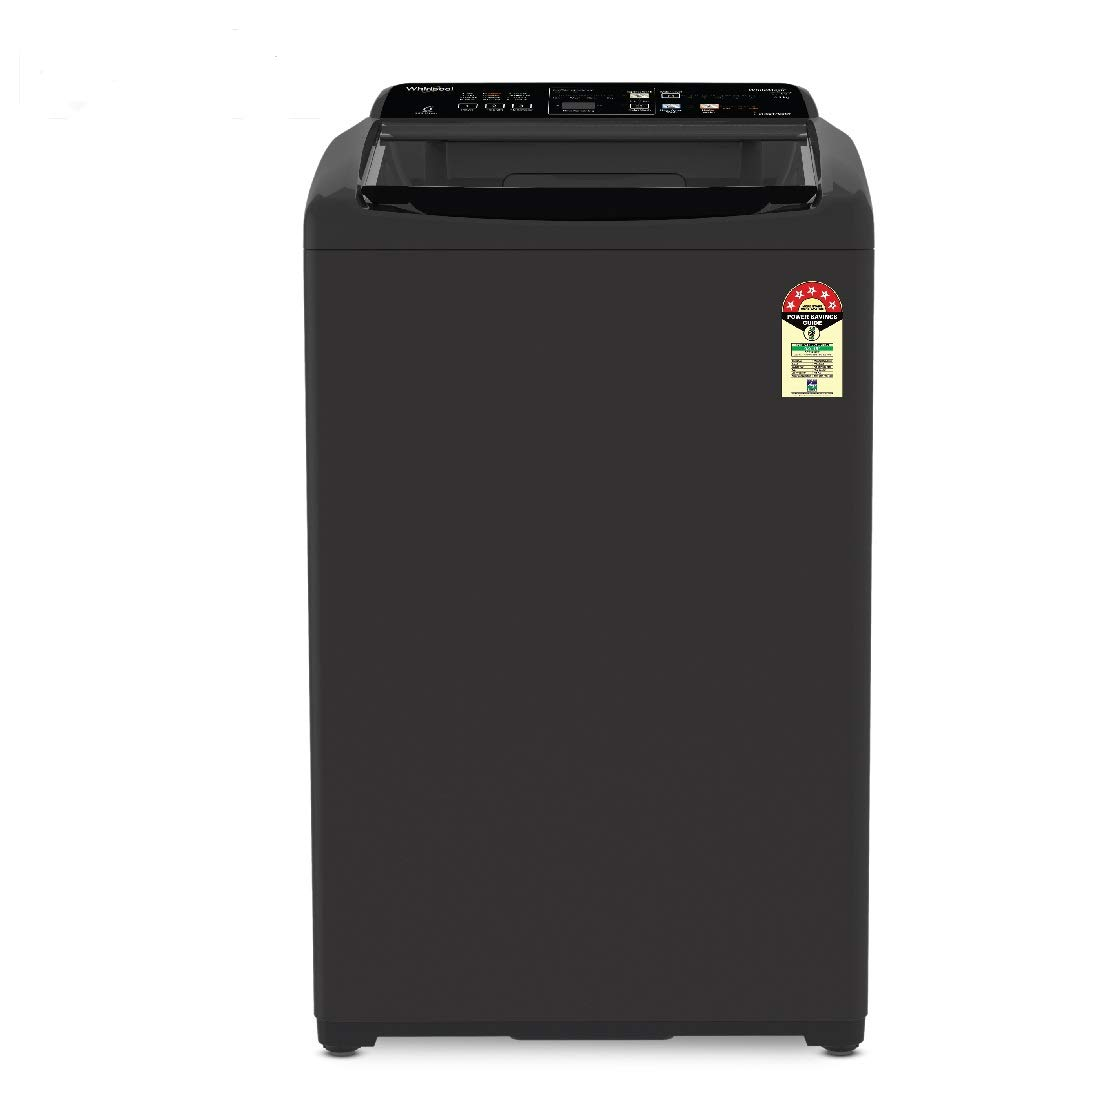 Whirlpool 6.5 kg 5 Star Fully-Automatic Top Loading Washing Machine with In-Built Heater (White magic Elite Plus, Grey) 1